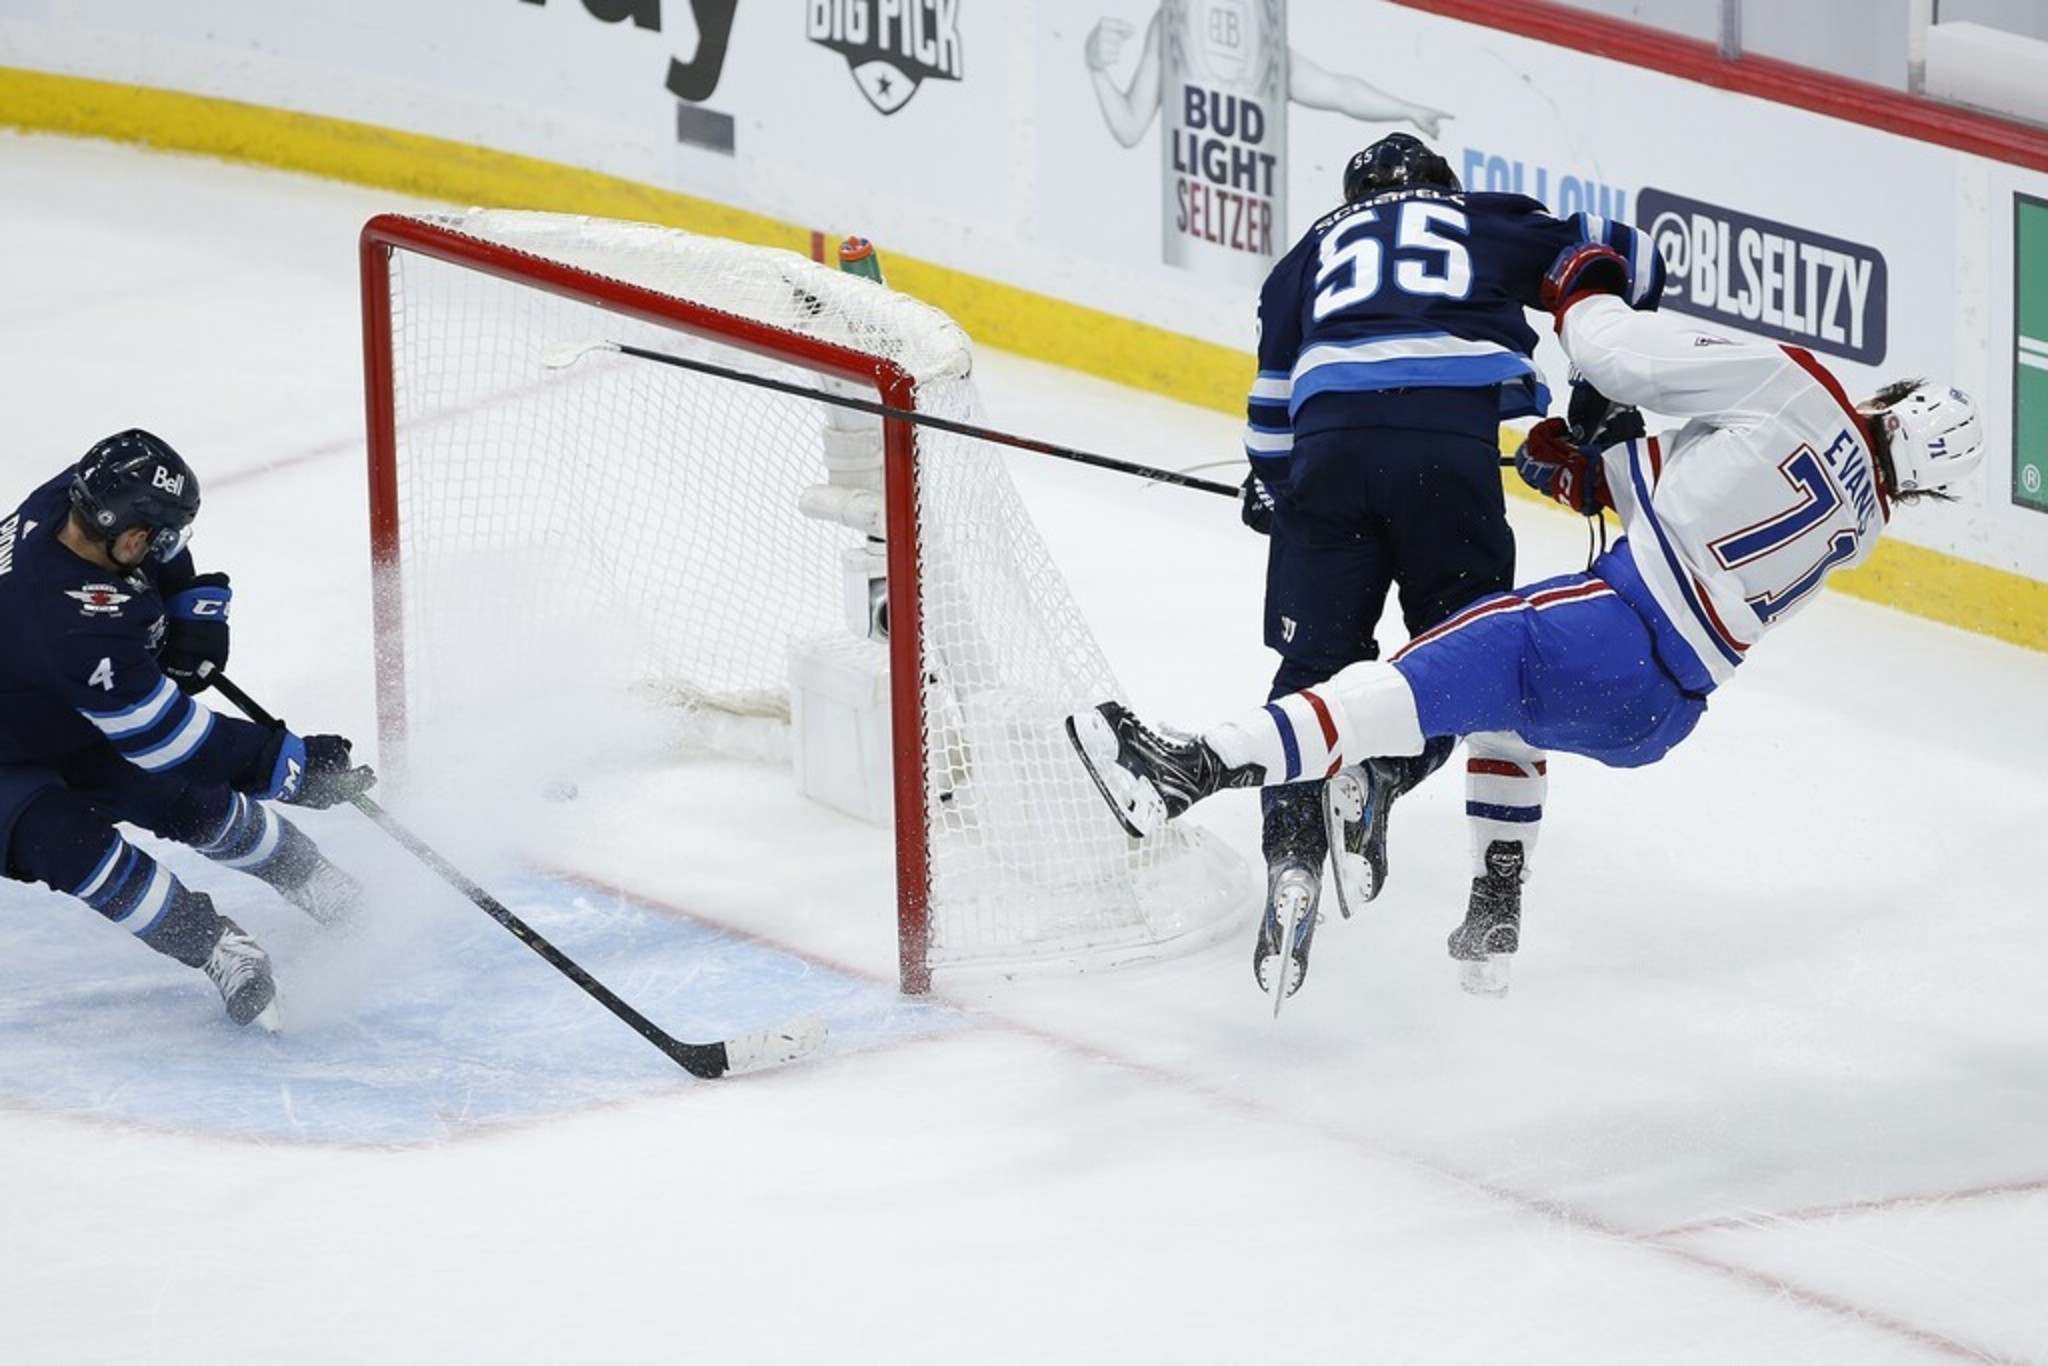 Mark Scheifele was suspended for four games for a hit on Montreal's Jake Evans after an empty-net goal in the final minute of Game 1 of the North Division final. (John Woods / The Canadian Press files)</p>